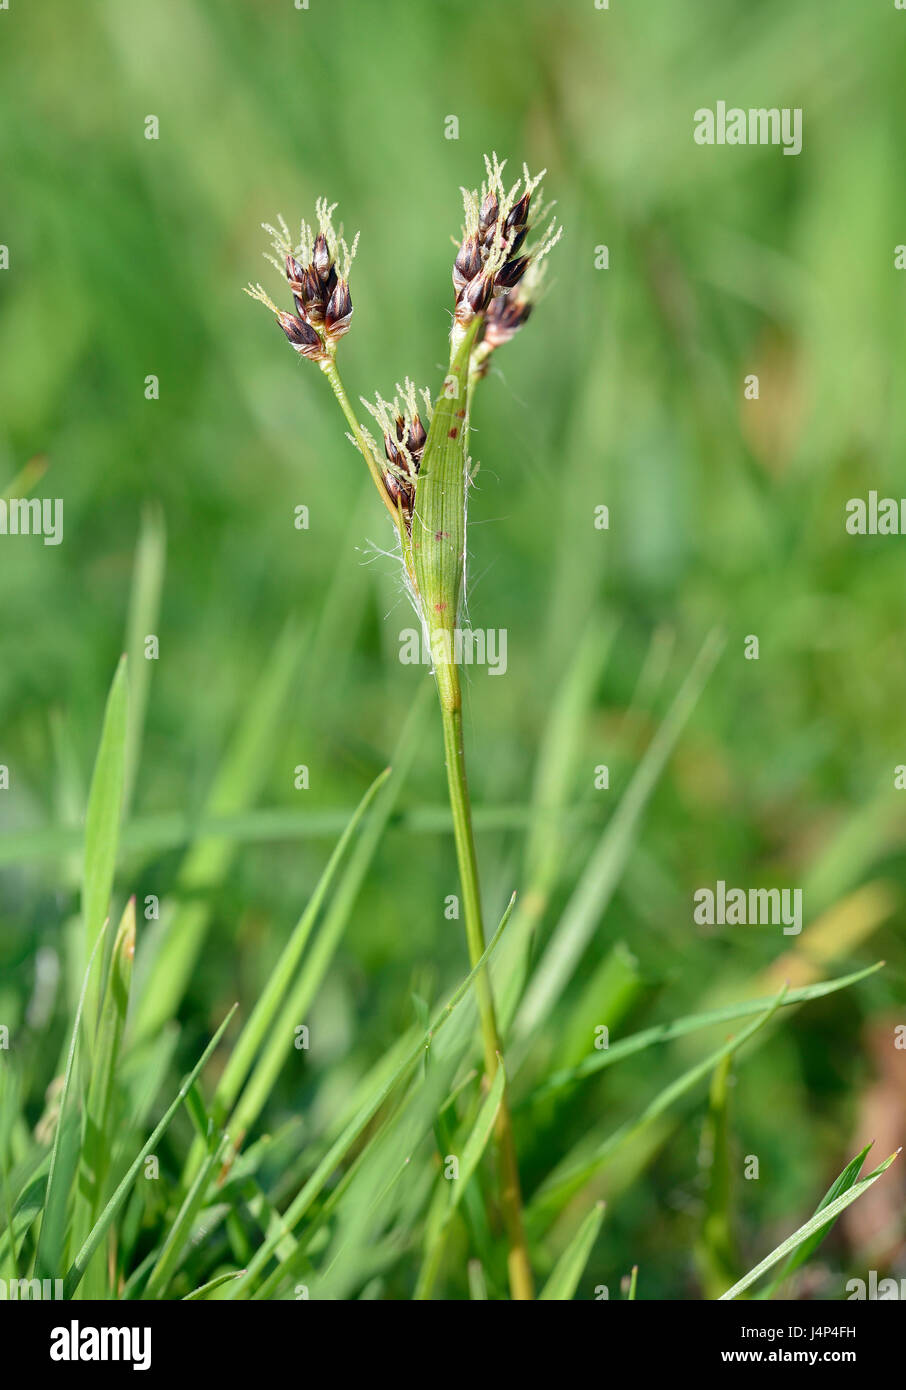 Field Wood-rush - Luzula campestris Small Grass Flower - Stock Image